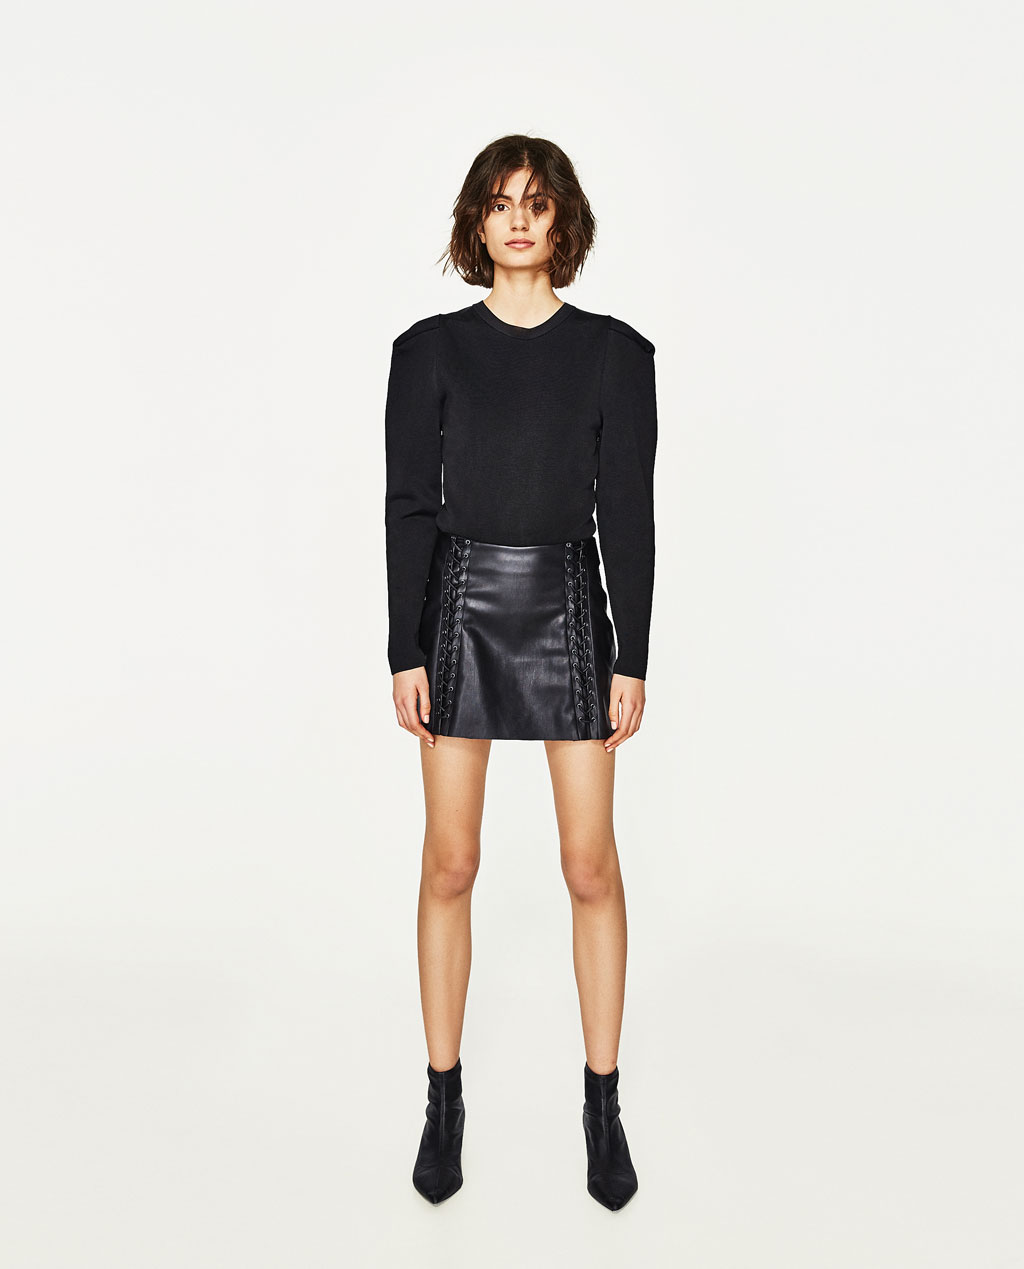 Faux Leather Skirt | Fringe Leather Skirt | Asymetrical Leather Skirt